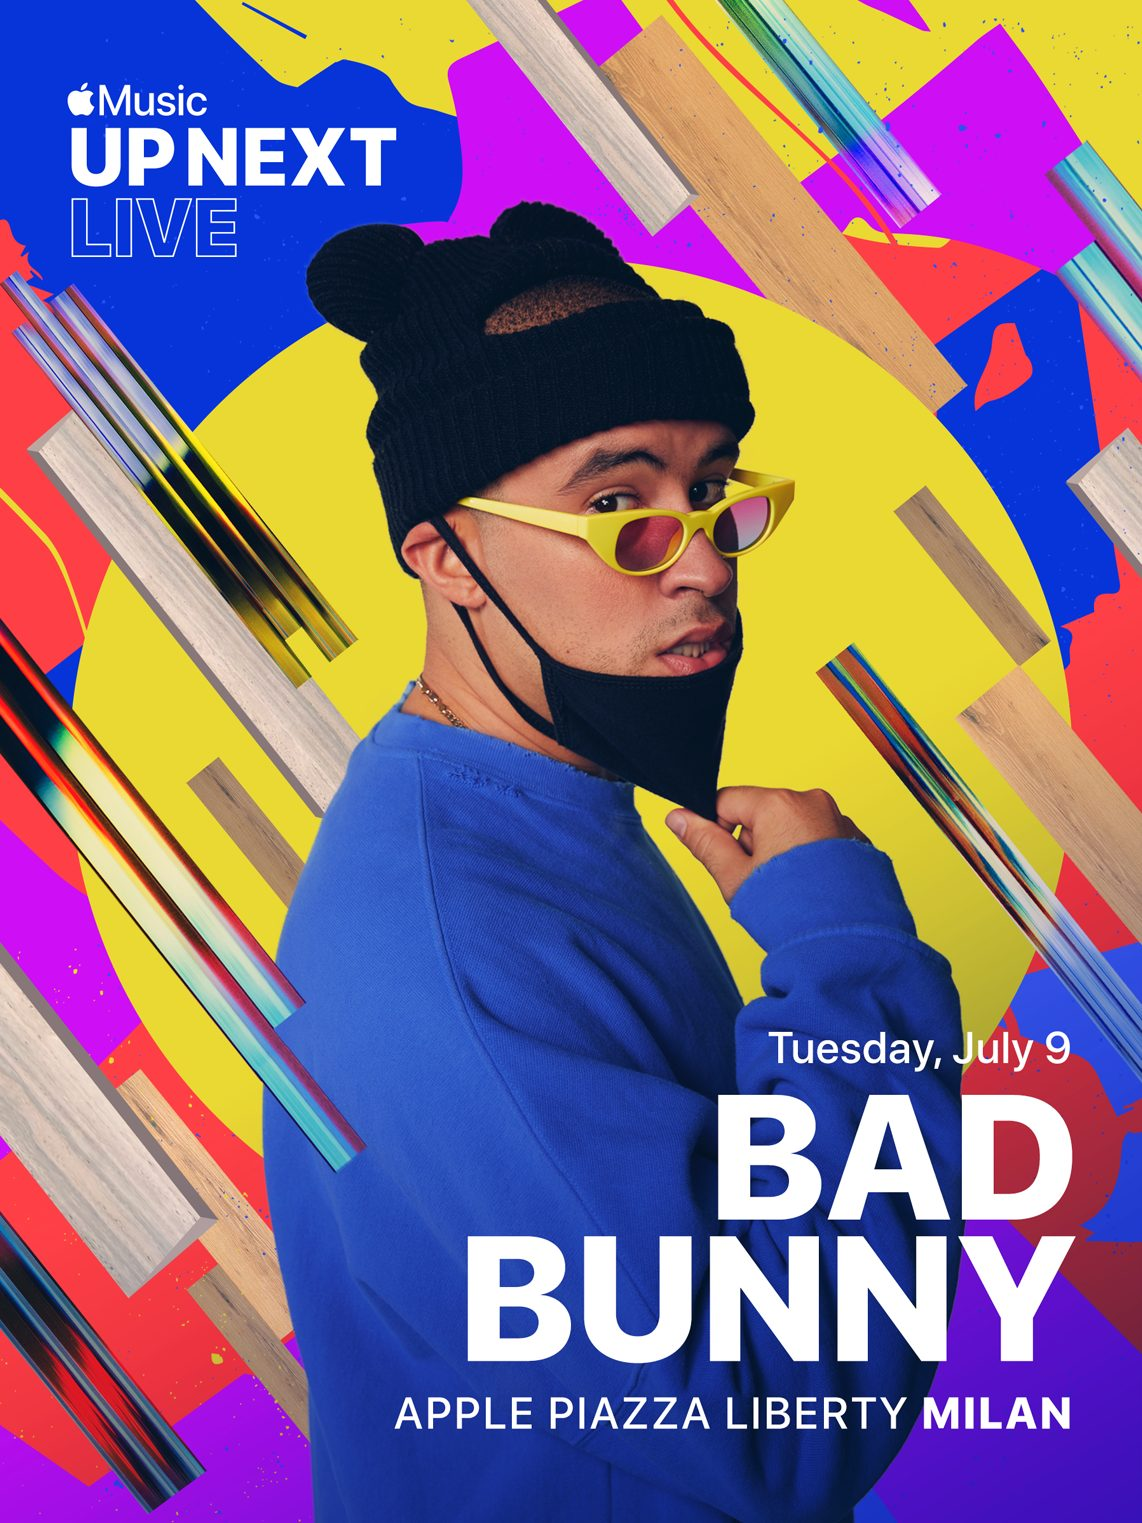 up next live poster bad bunny